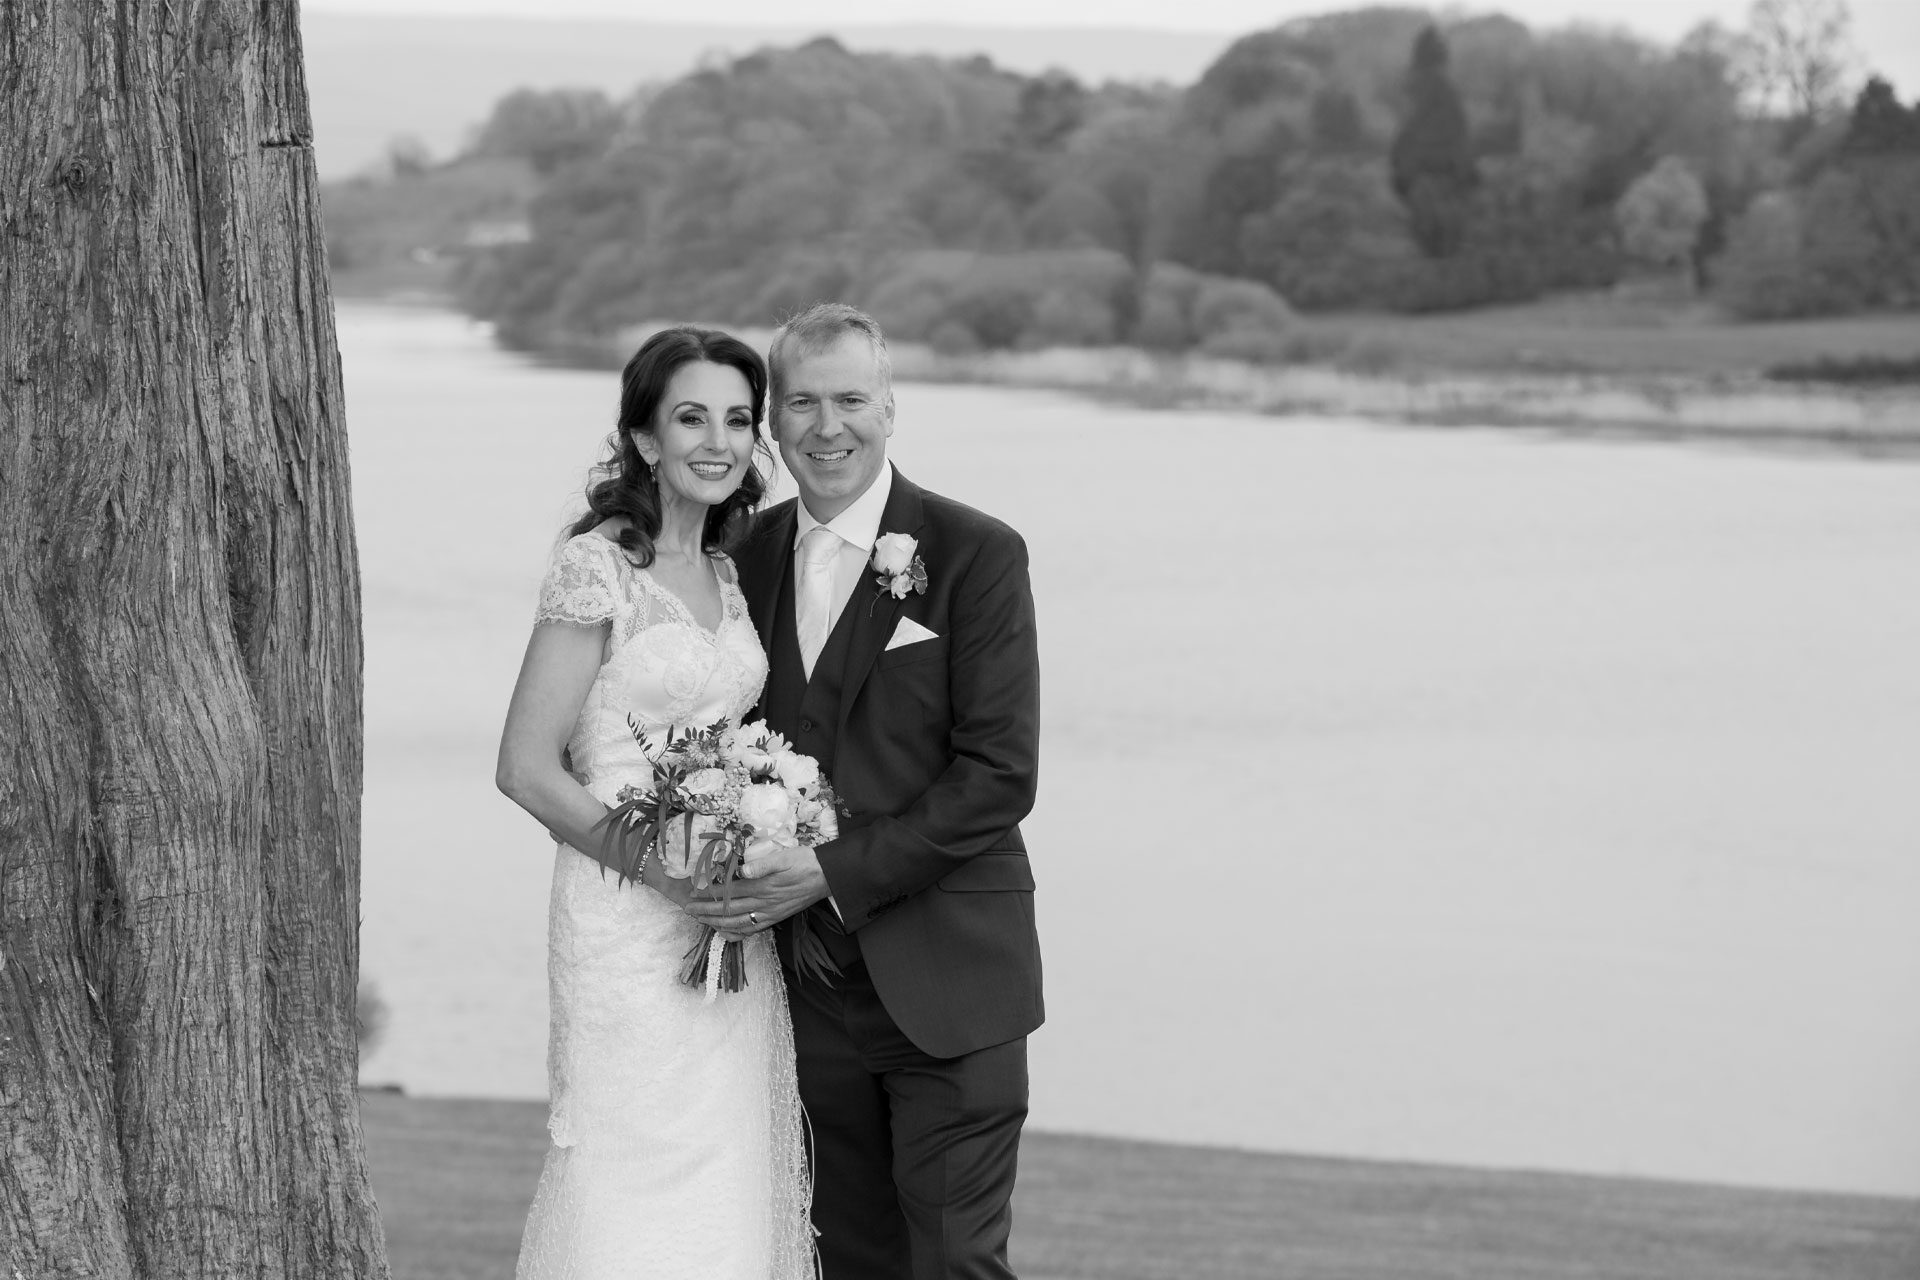 Photo of Vania and Robert on their wedding day, captured at Killyhevlin Hotel, Enniskillen, Co. Fermanagh, Northern Ireland.